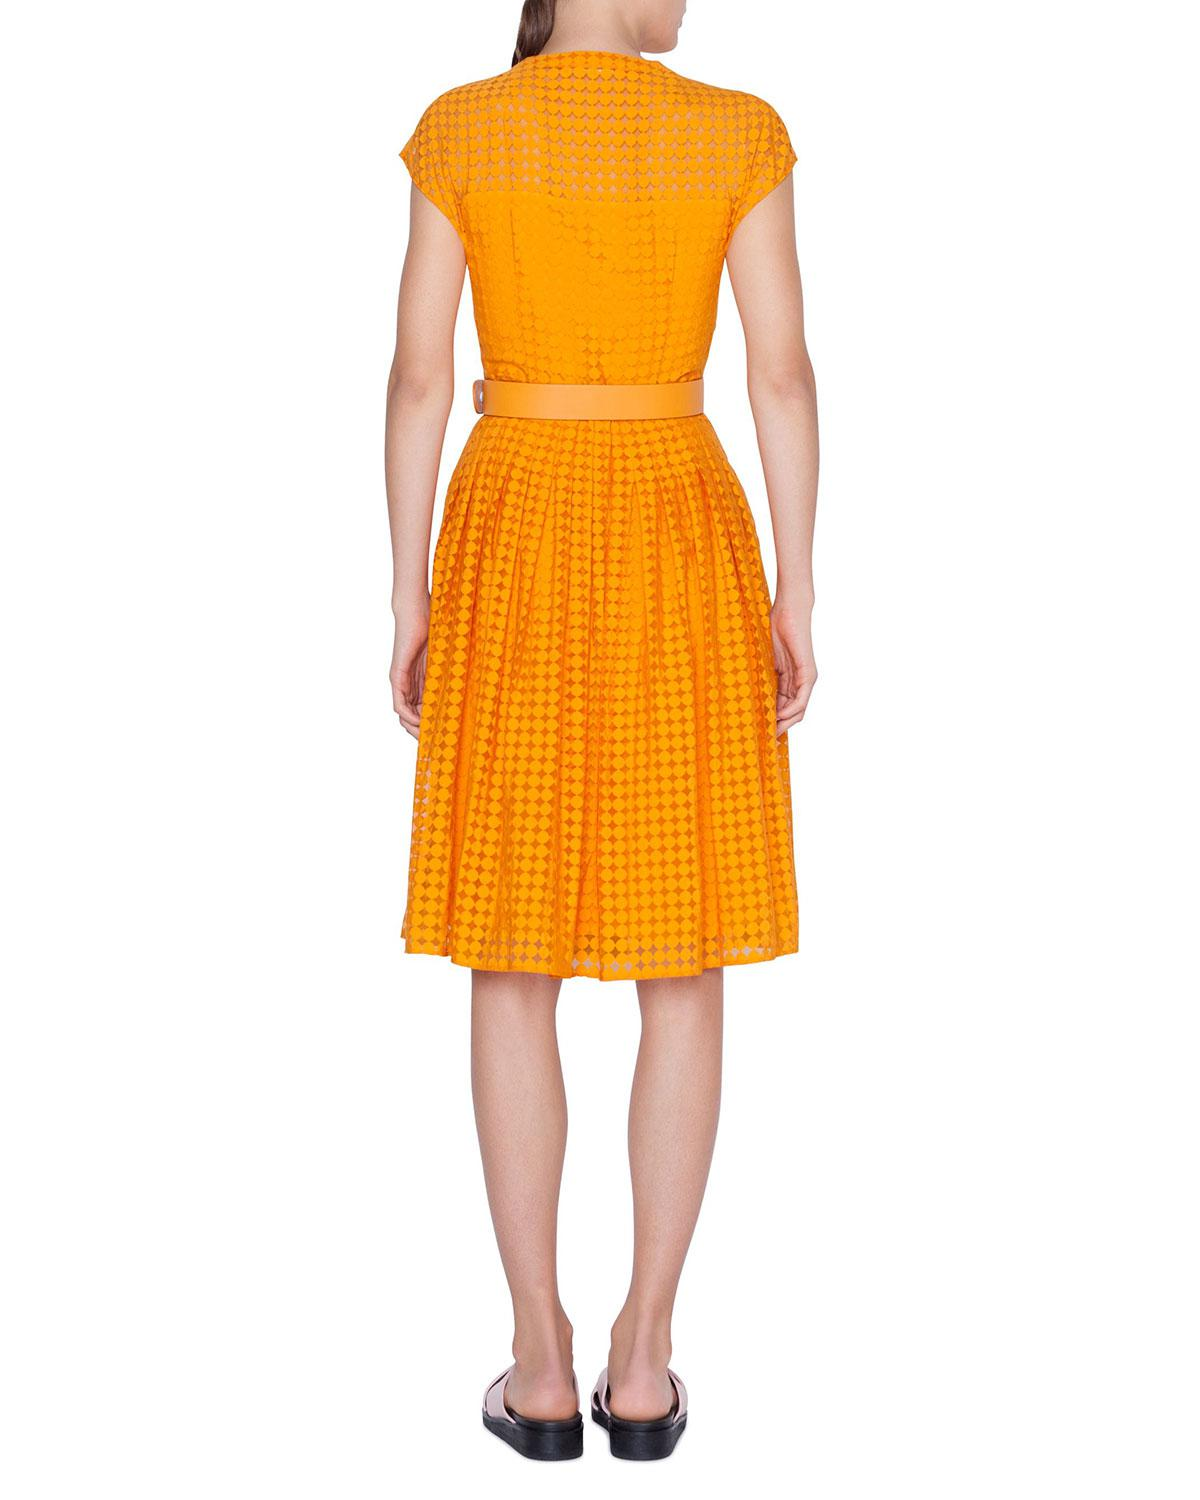 1dd8014b36 Lyst - Akris Punto Belted Dotted Lace Illusion Dress in Orange